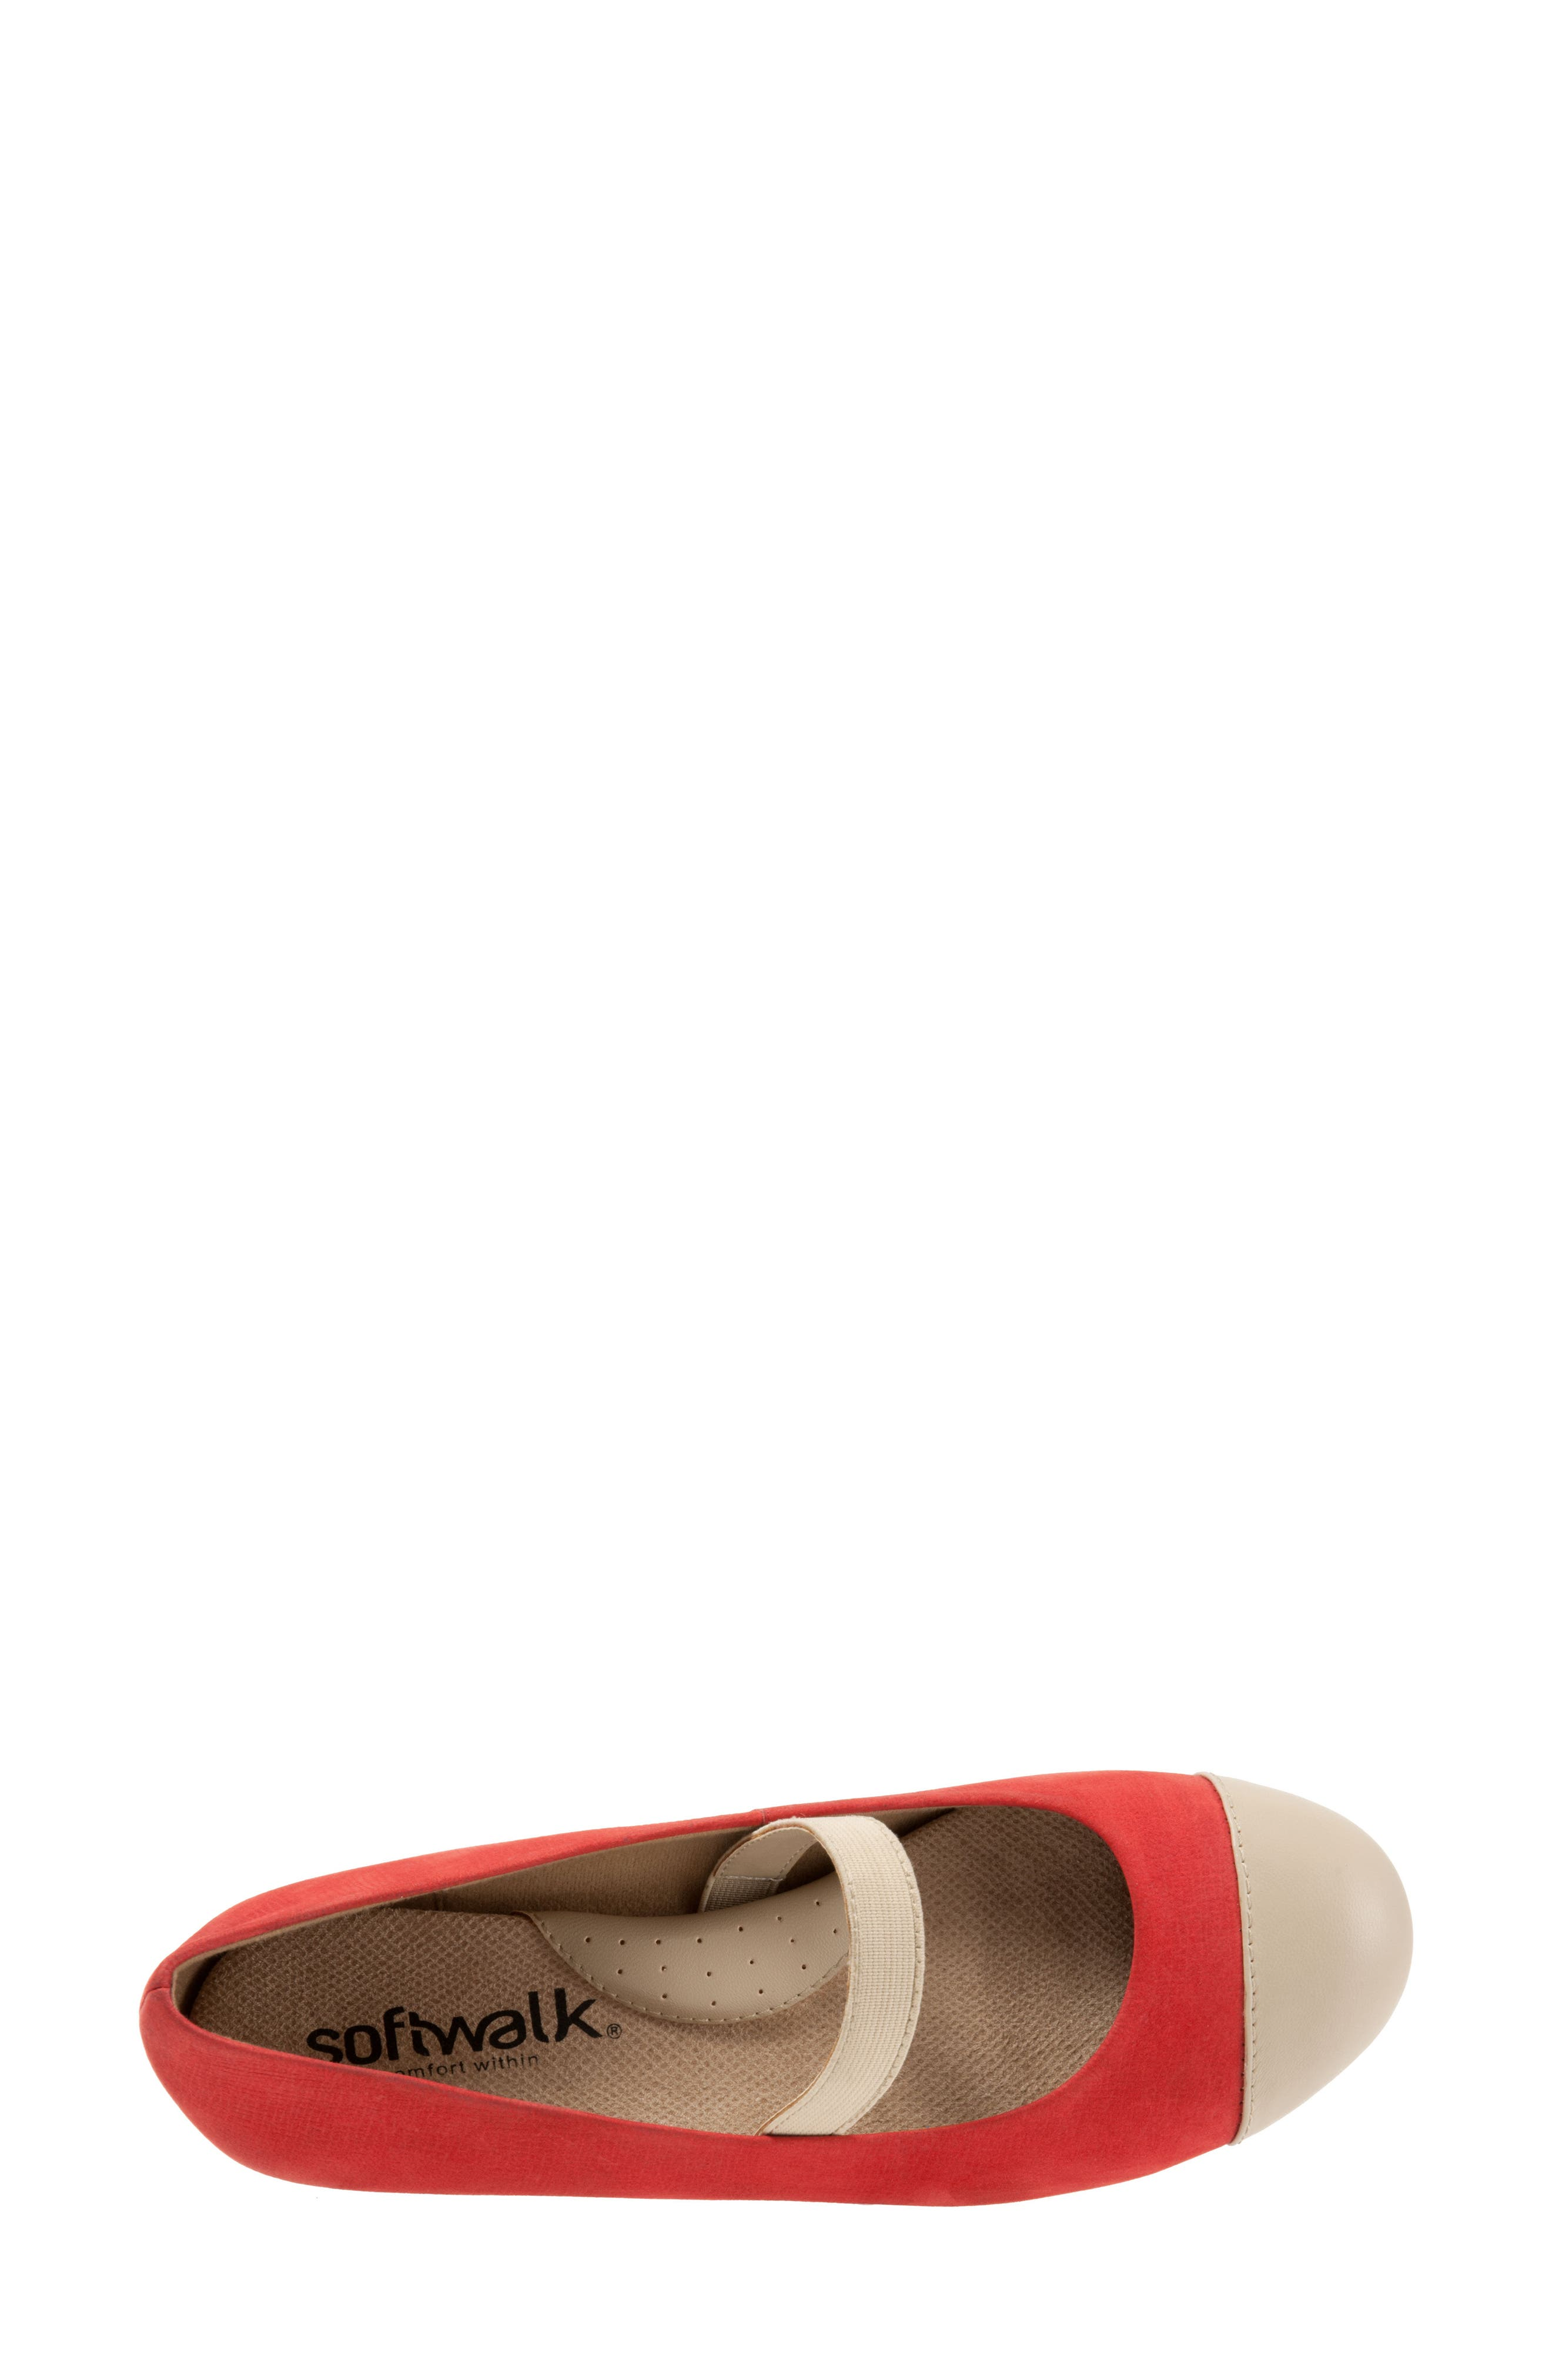 Napa Mary Jane Flat,                             Alternate thumbnail 5, color,                             Red/ Nude Leather